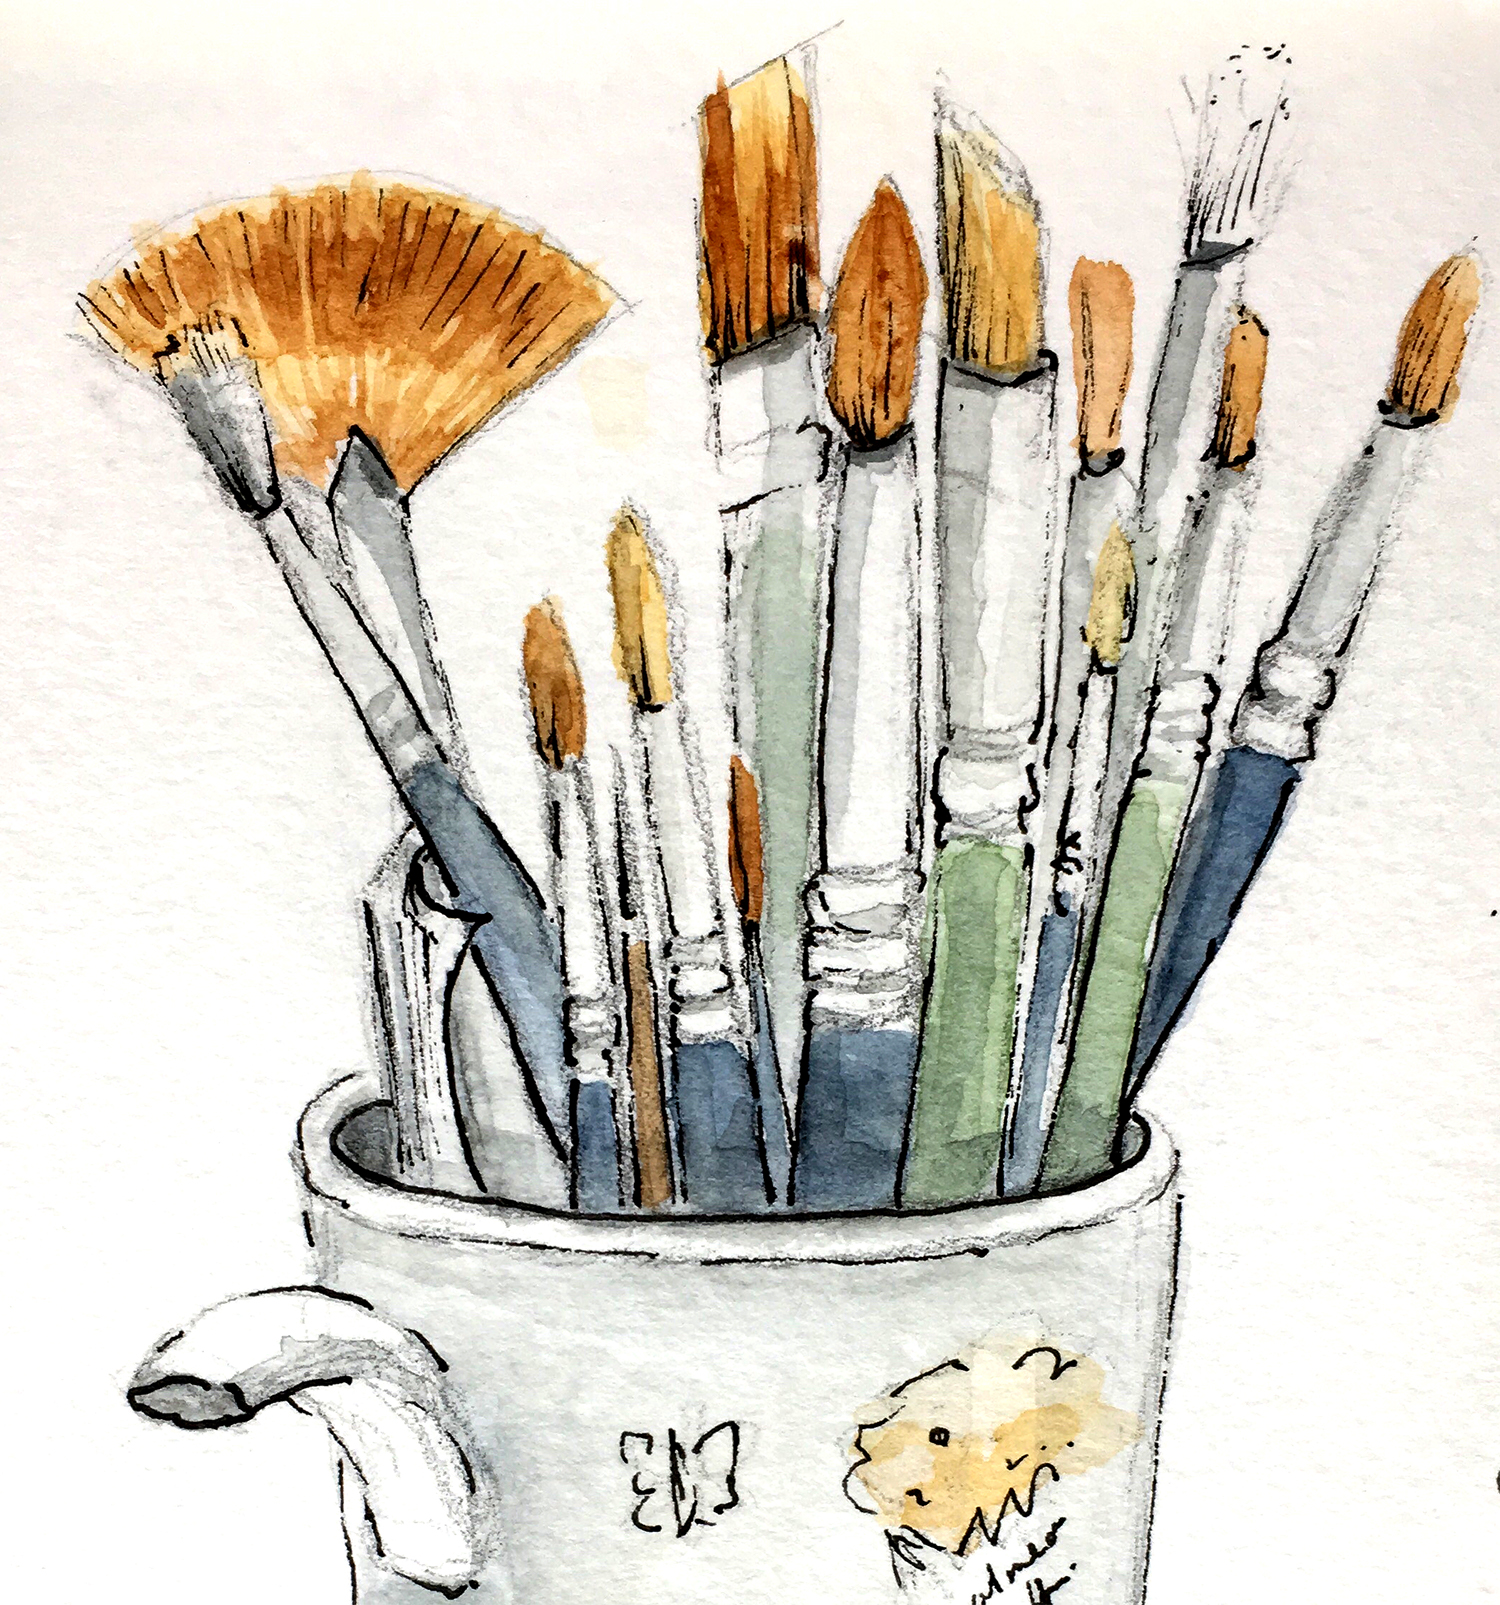 penselen | brushes | aquarel | watercolour